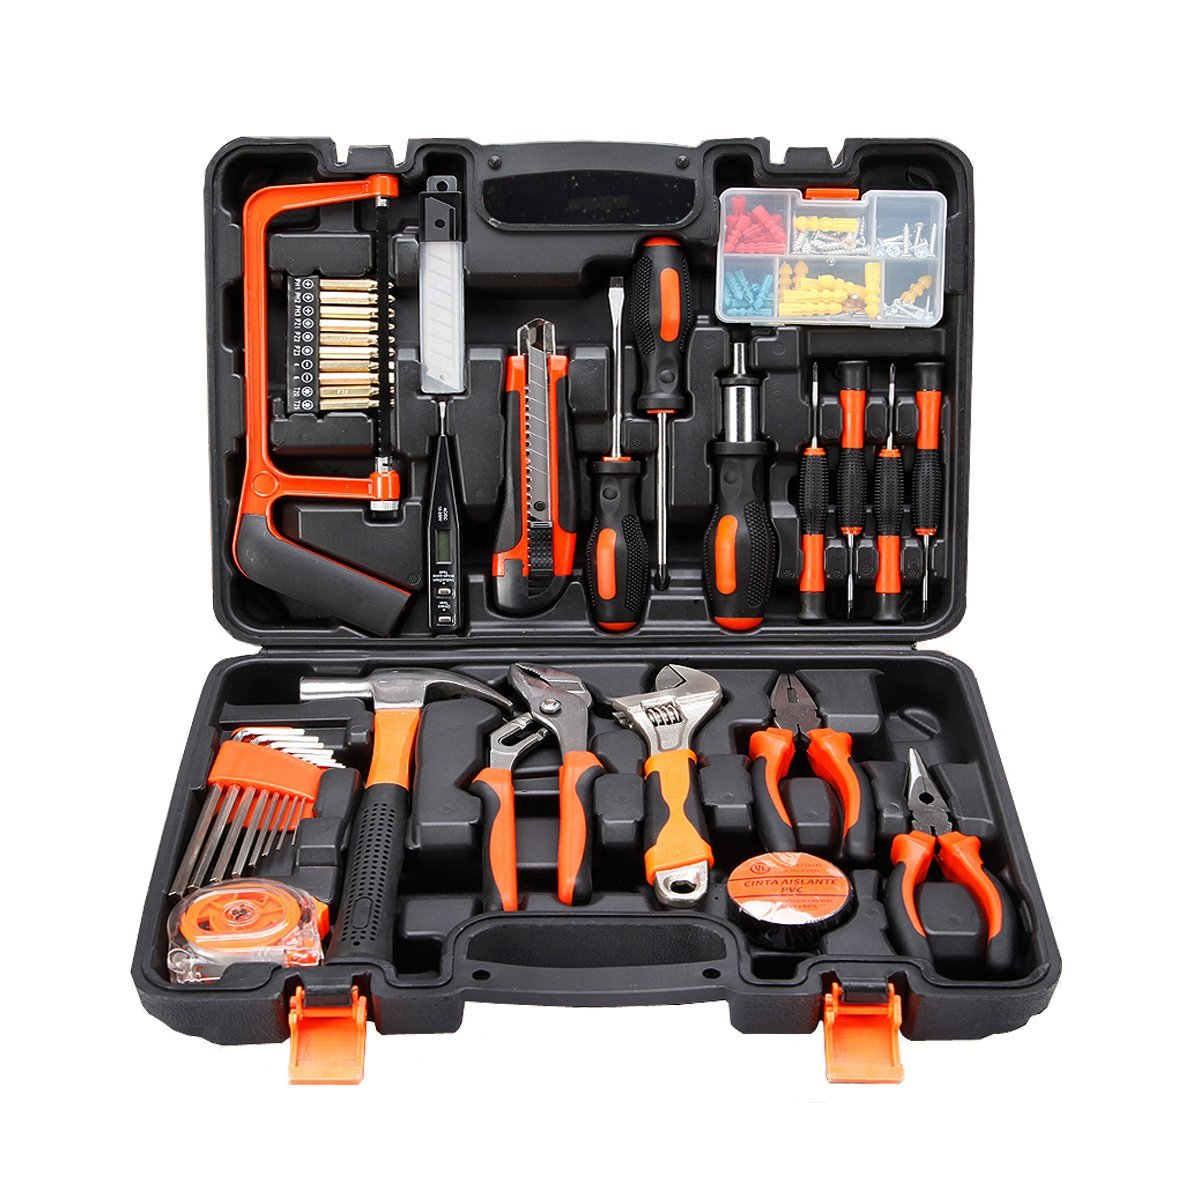 TOOL MAX 100PCS Home inprovement Tool Kit, Household repairing Mixed Tool Set, with Plastic Blow Molded Tool Box Storage Case,Daily Use